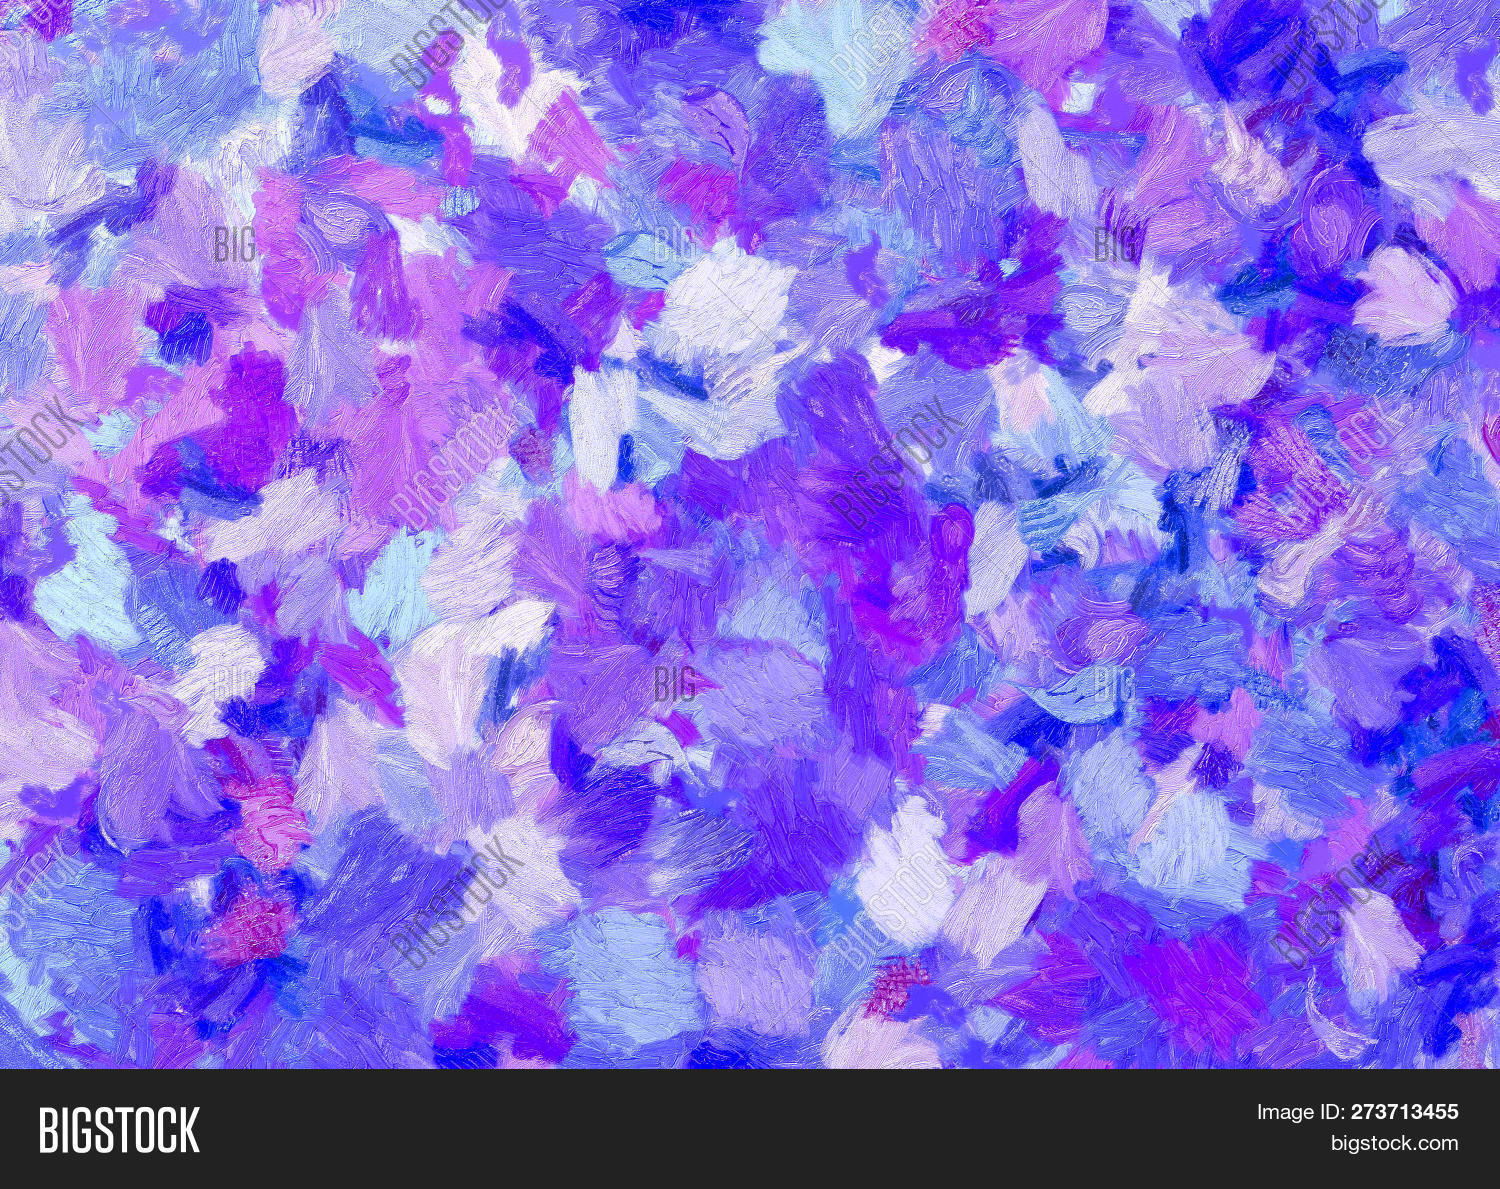 Blue Purple Abstract Image Photo Free Trial Bigstock